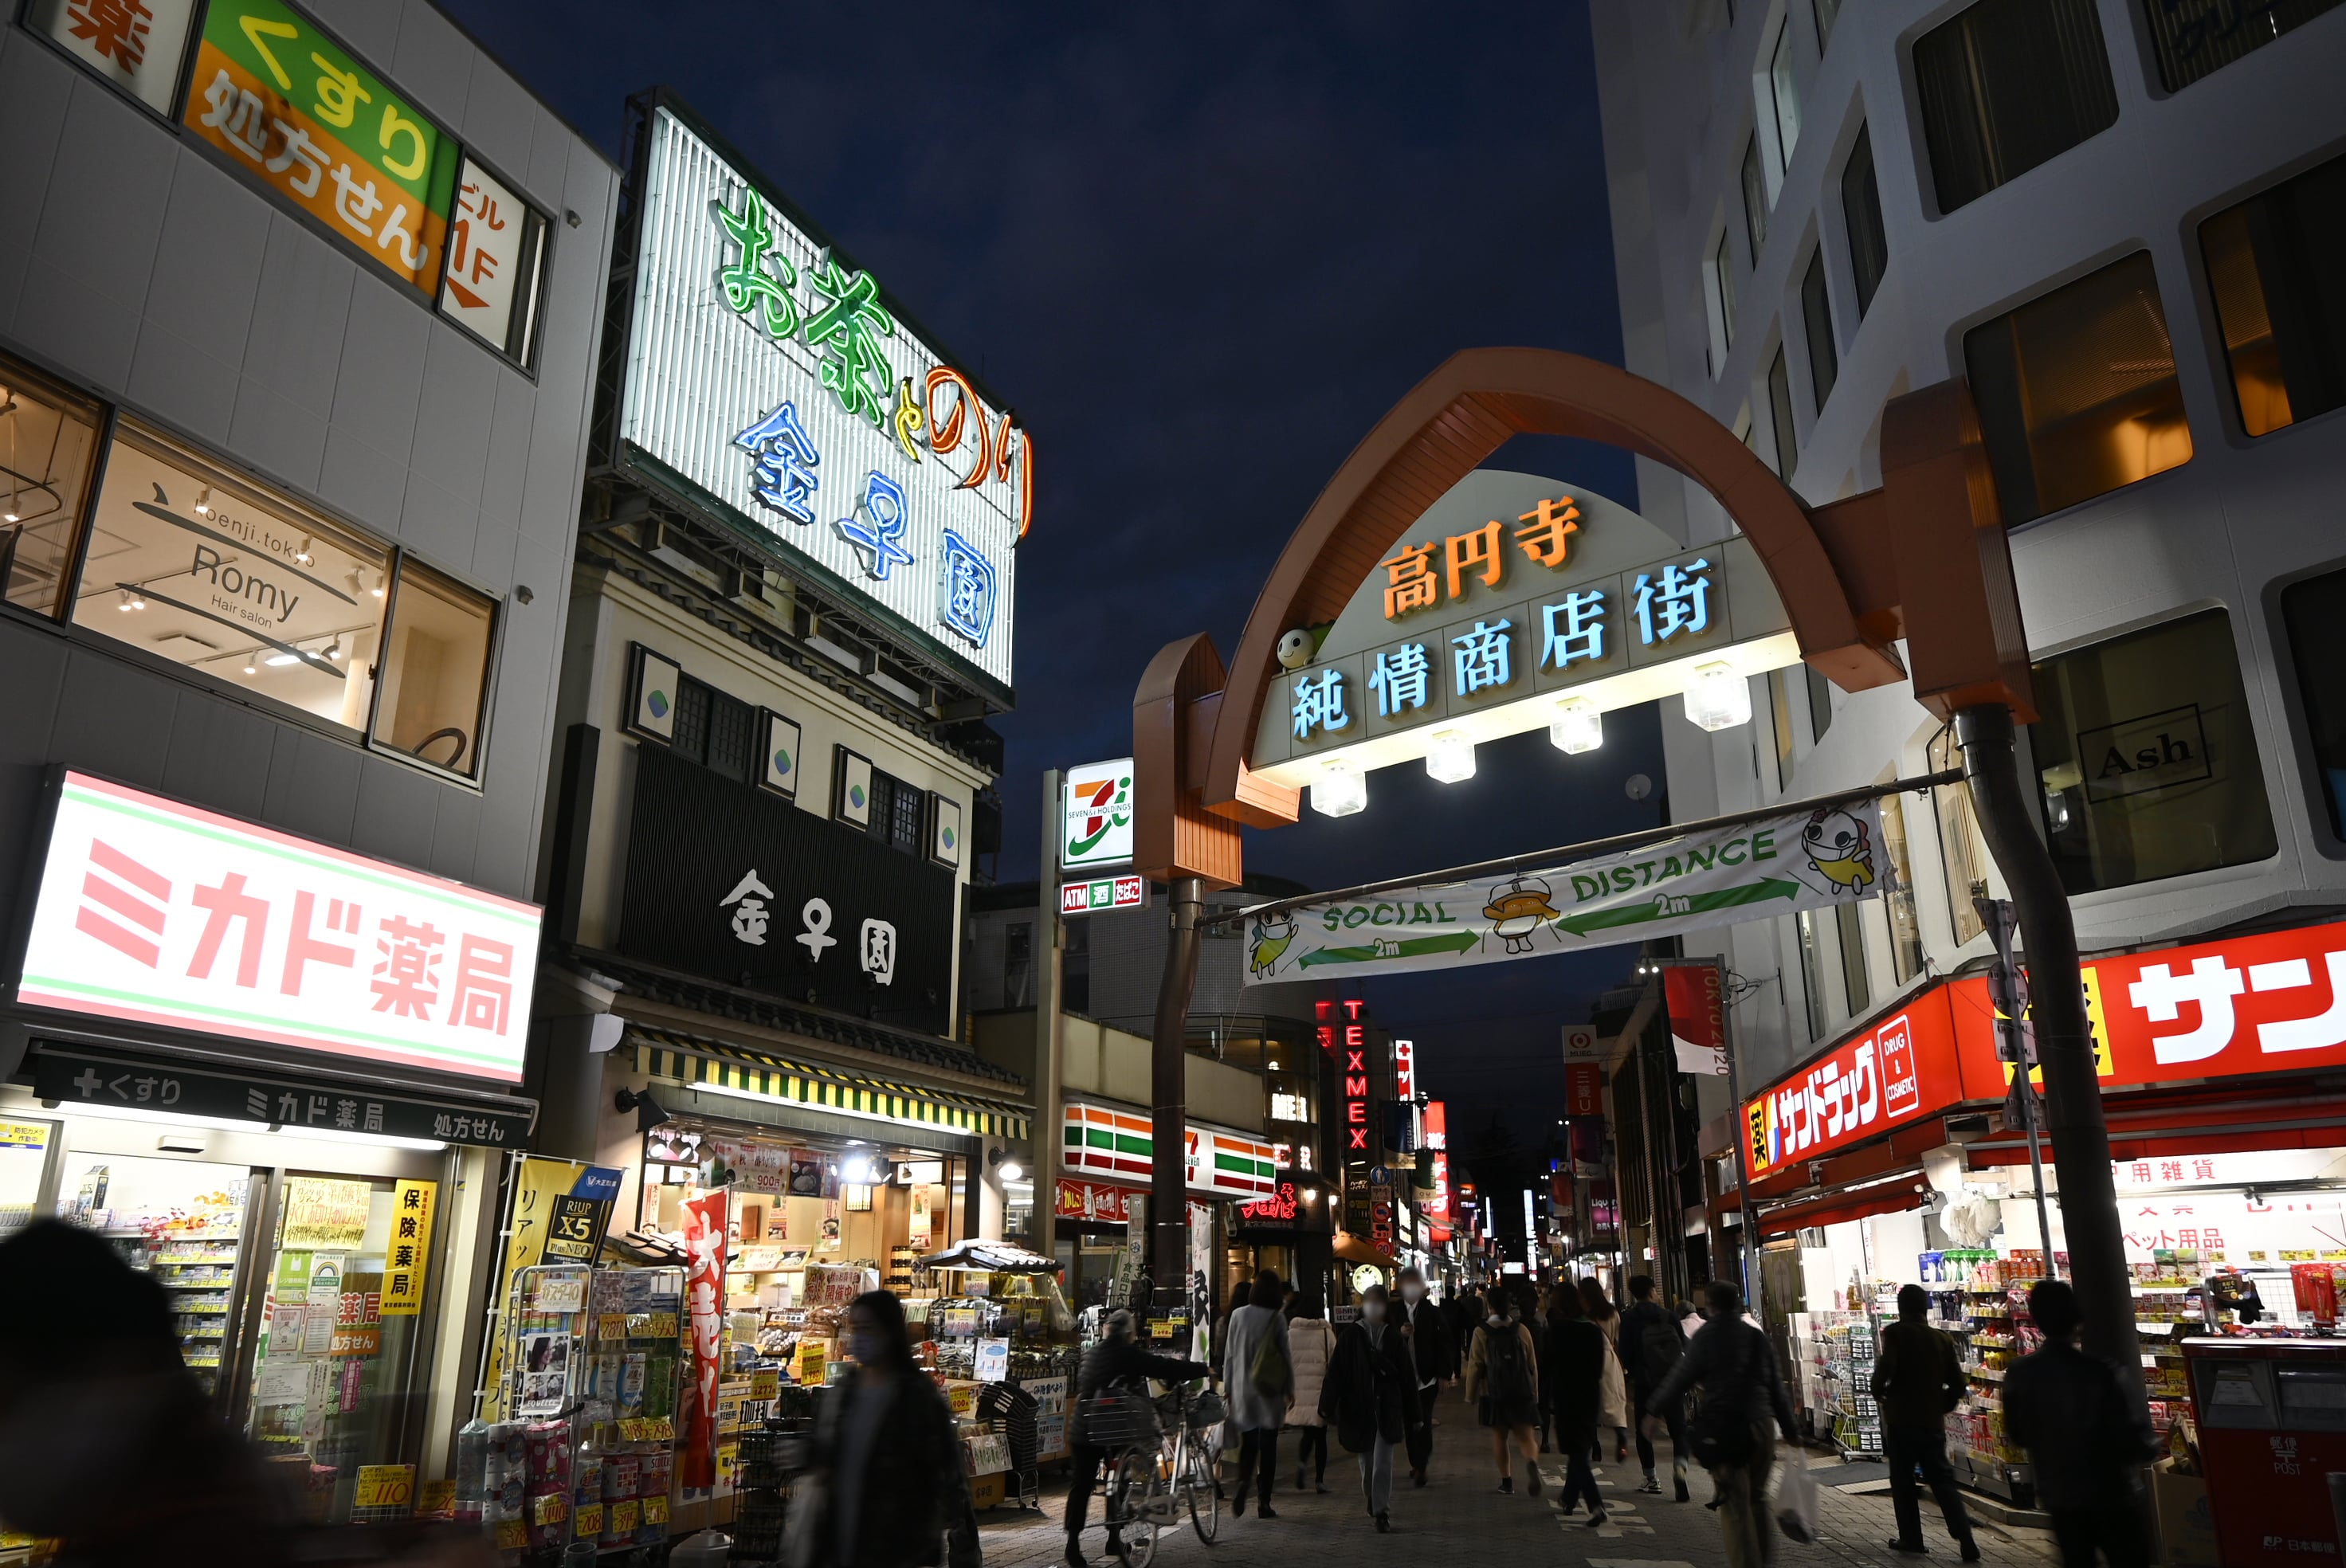 junjo shotengai at night